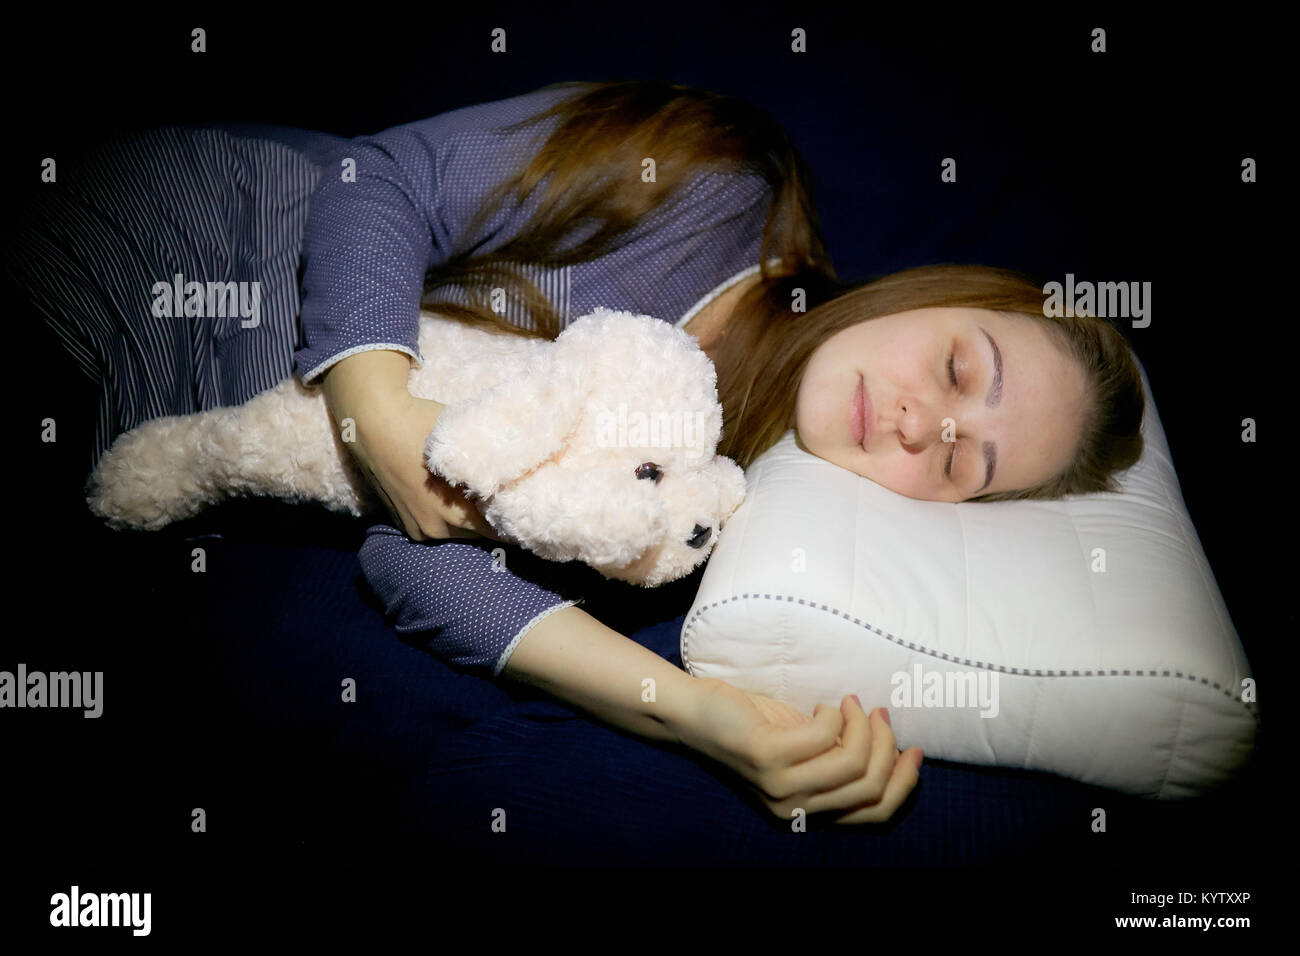 a young woman is sleeping on an orthopedic pillow with a soft indushka in a blue nightgown - Stock Image